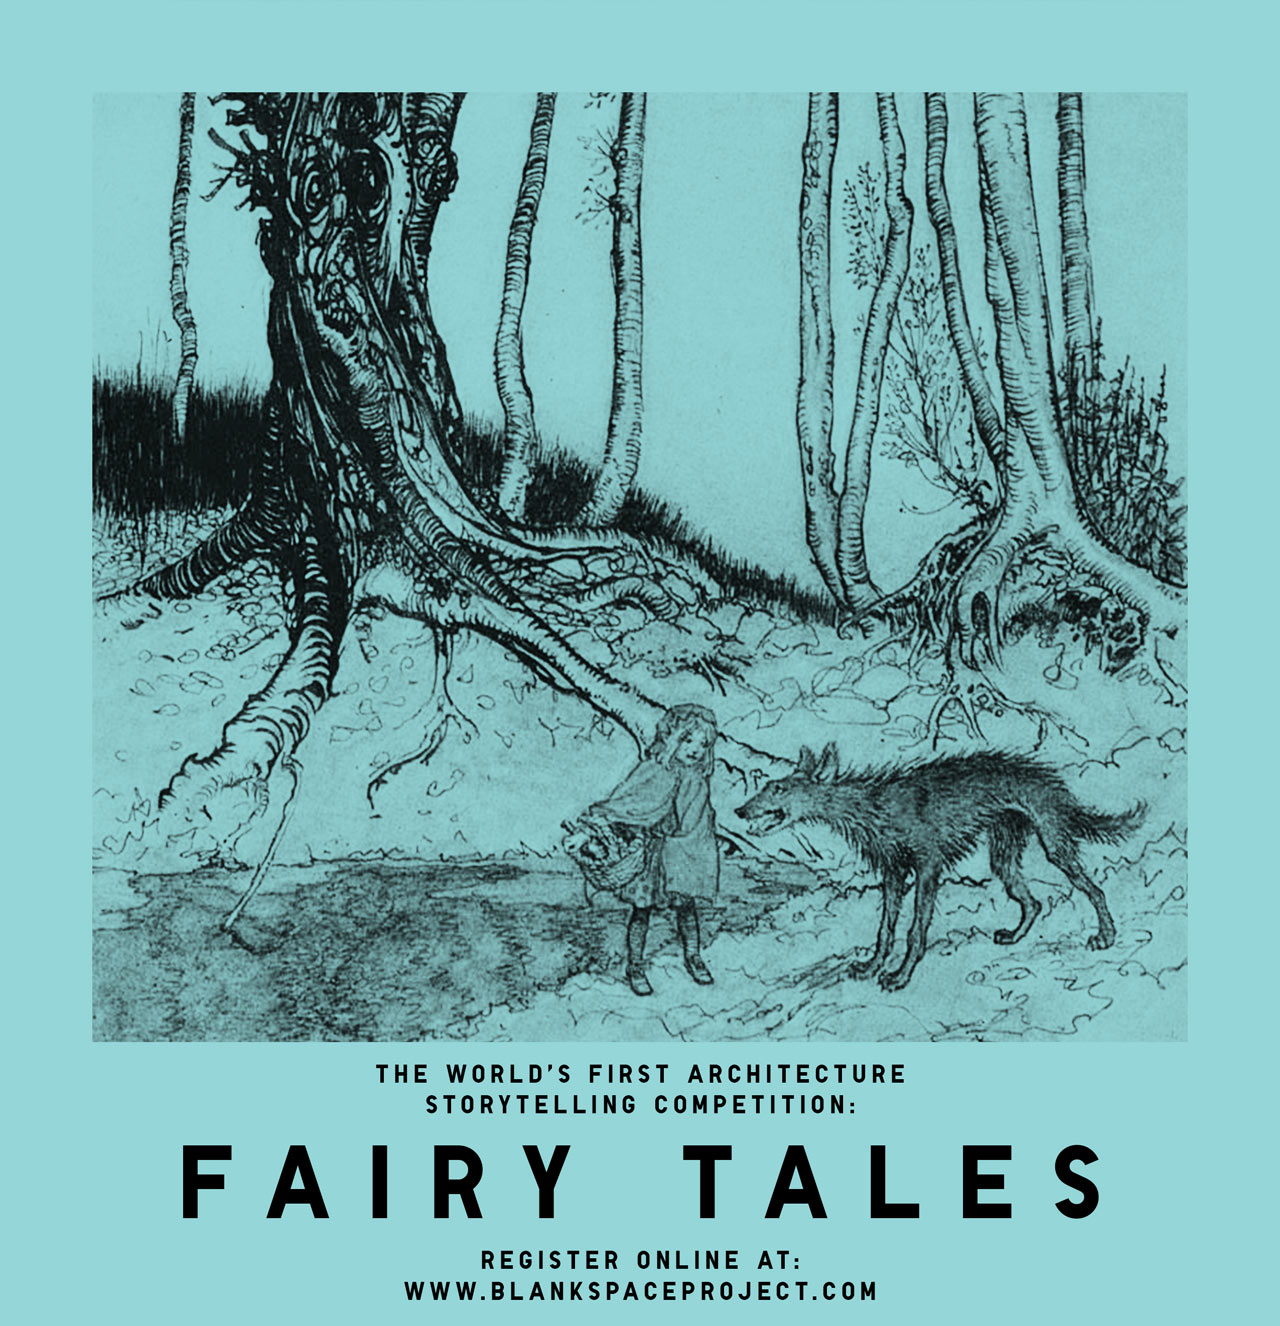 A New Kind of Architecture Competition: Fairy Tales